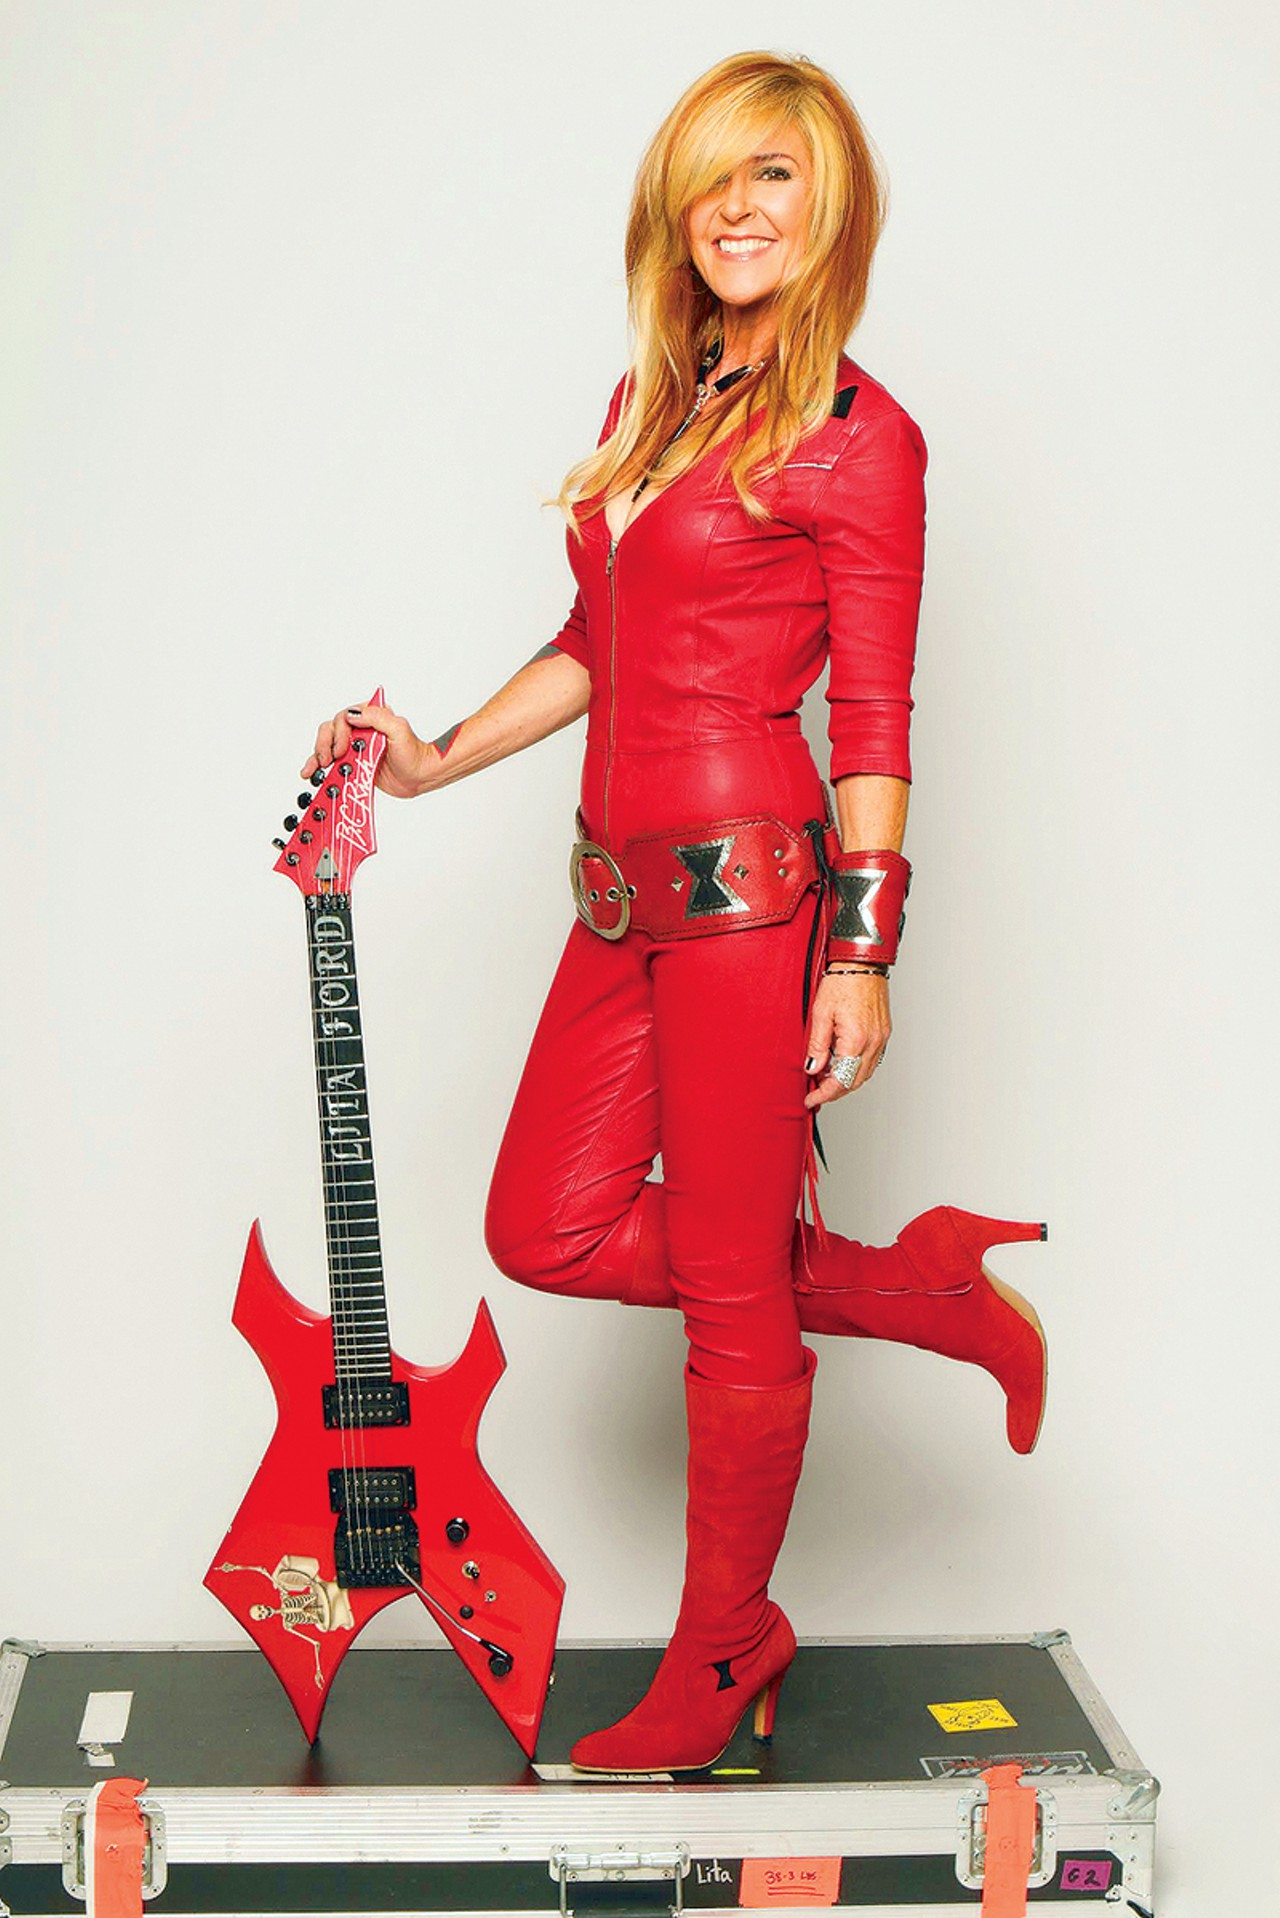 lita ford discography top albums and reviews. Black Bedroom Furniture Sets. Home Design Ideas